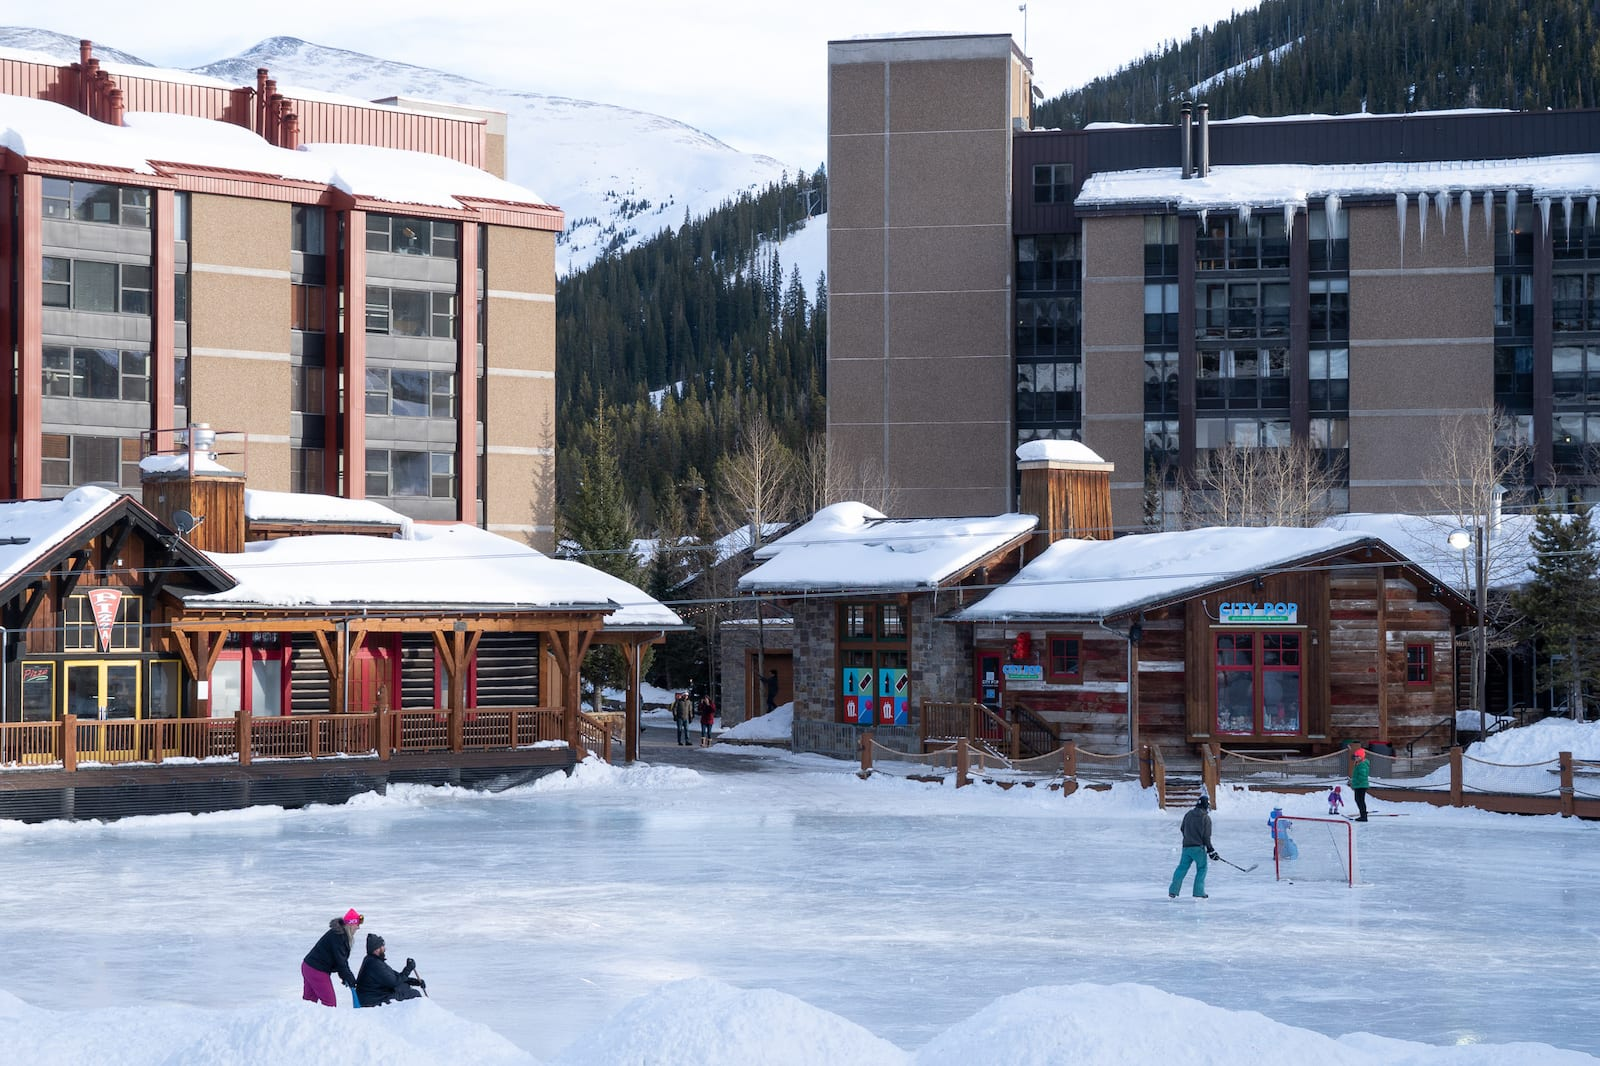 Skating at Copper Mountain Resort, CO